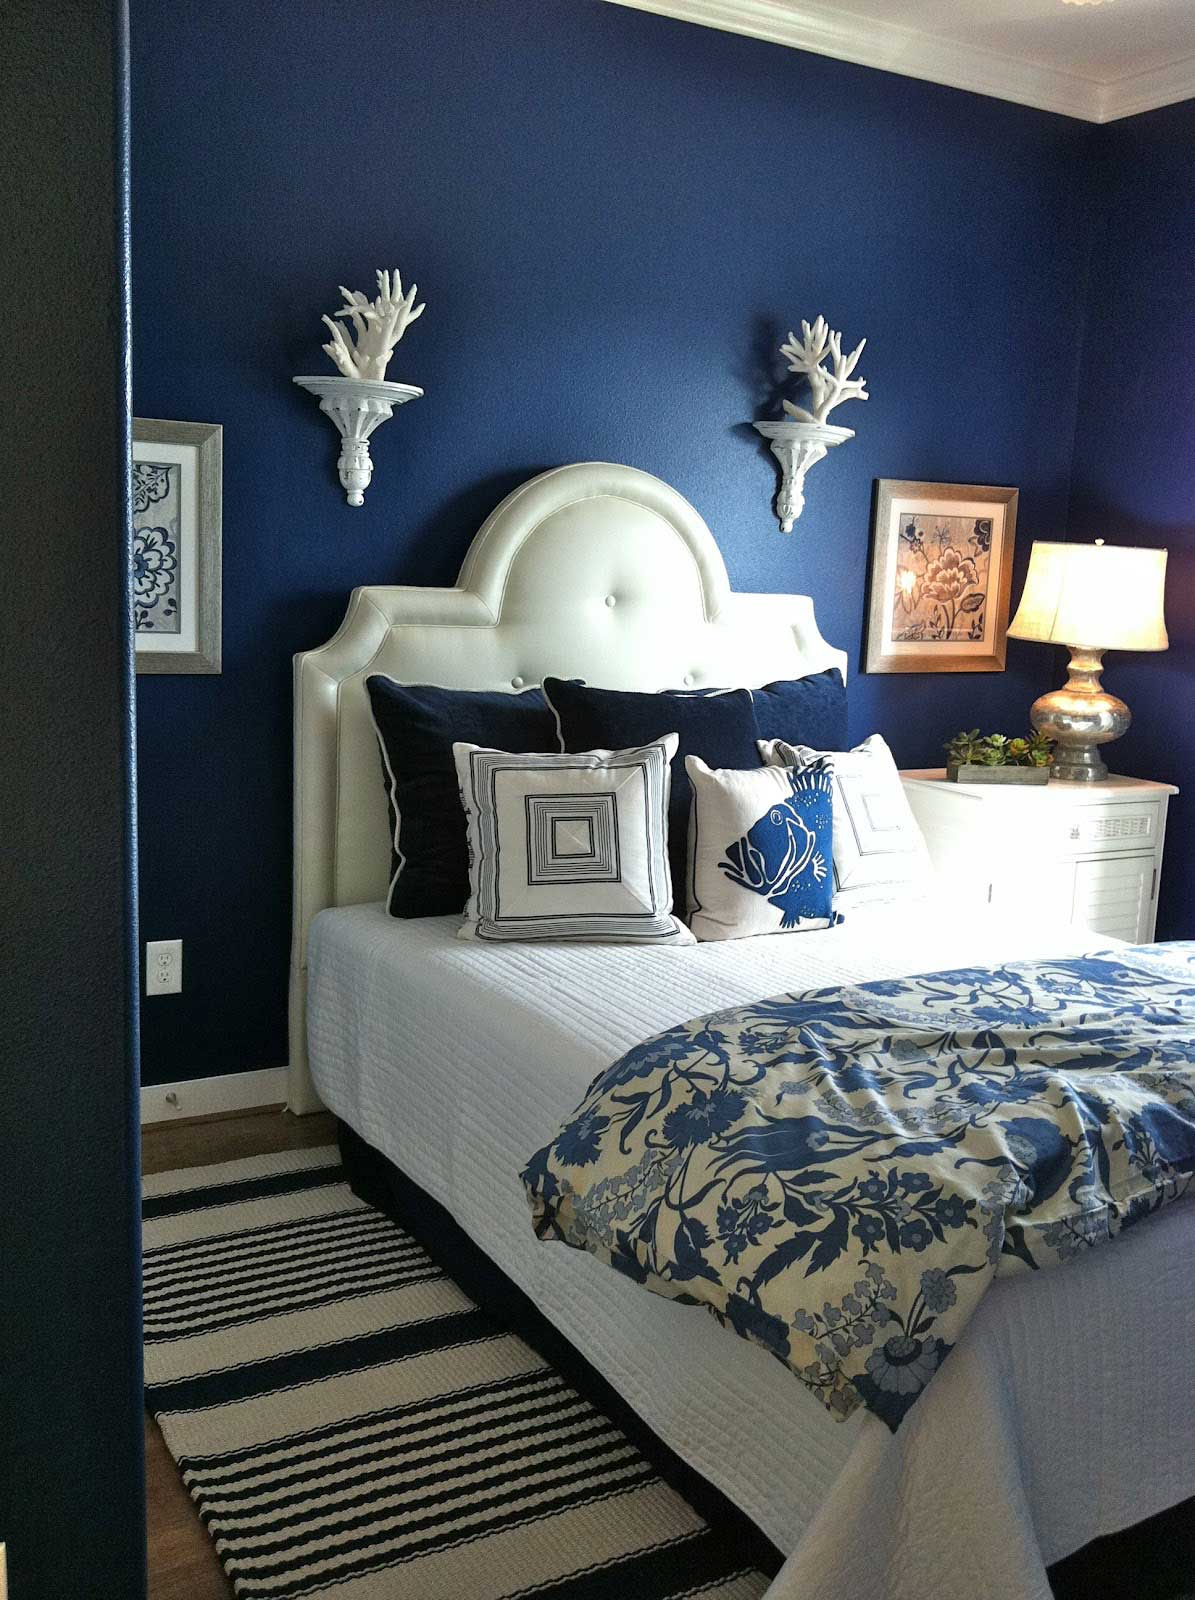 Bedroom blue color ideas - Dark Blue Bedroom Design